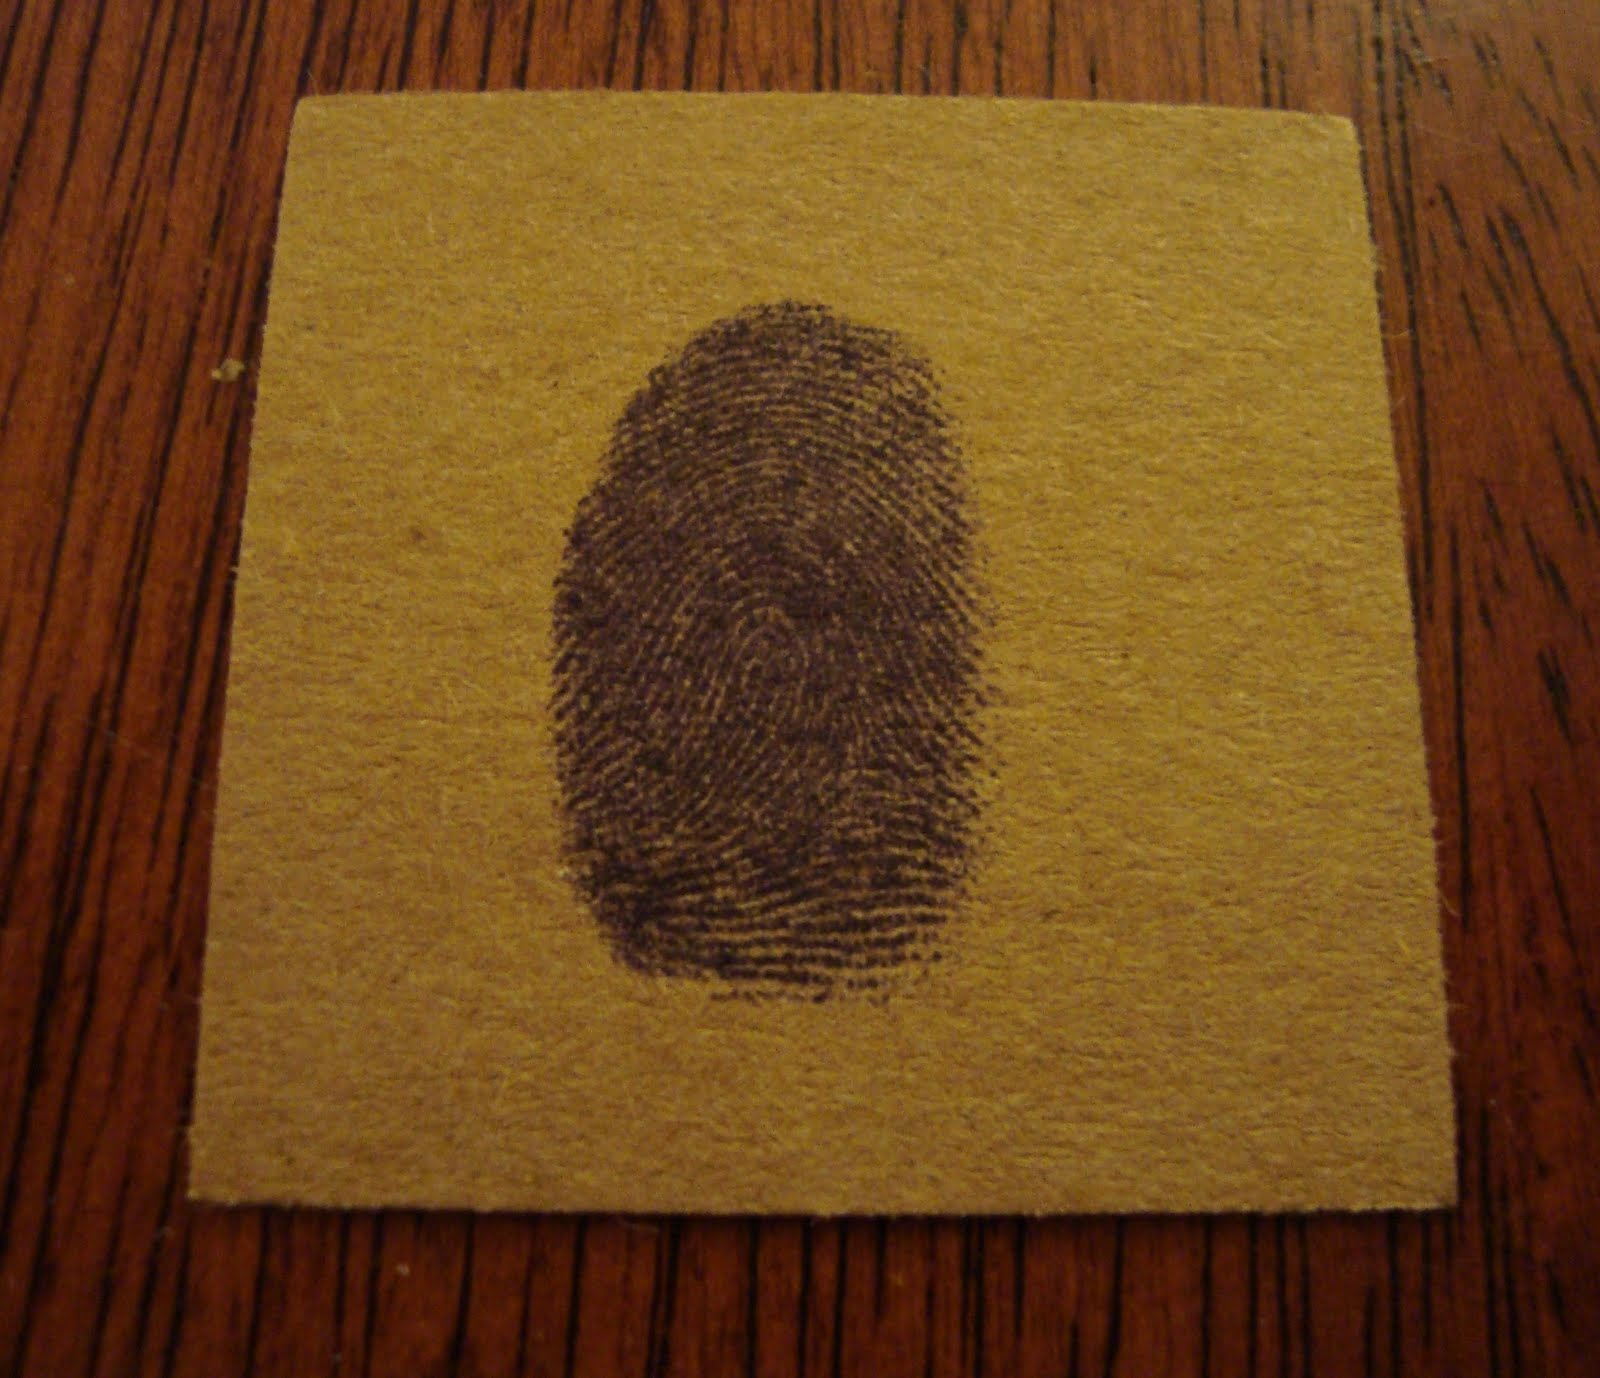 Family Fingerprint Specimen Art - Shaken Together